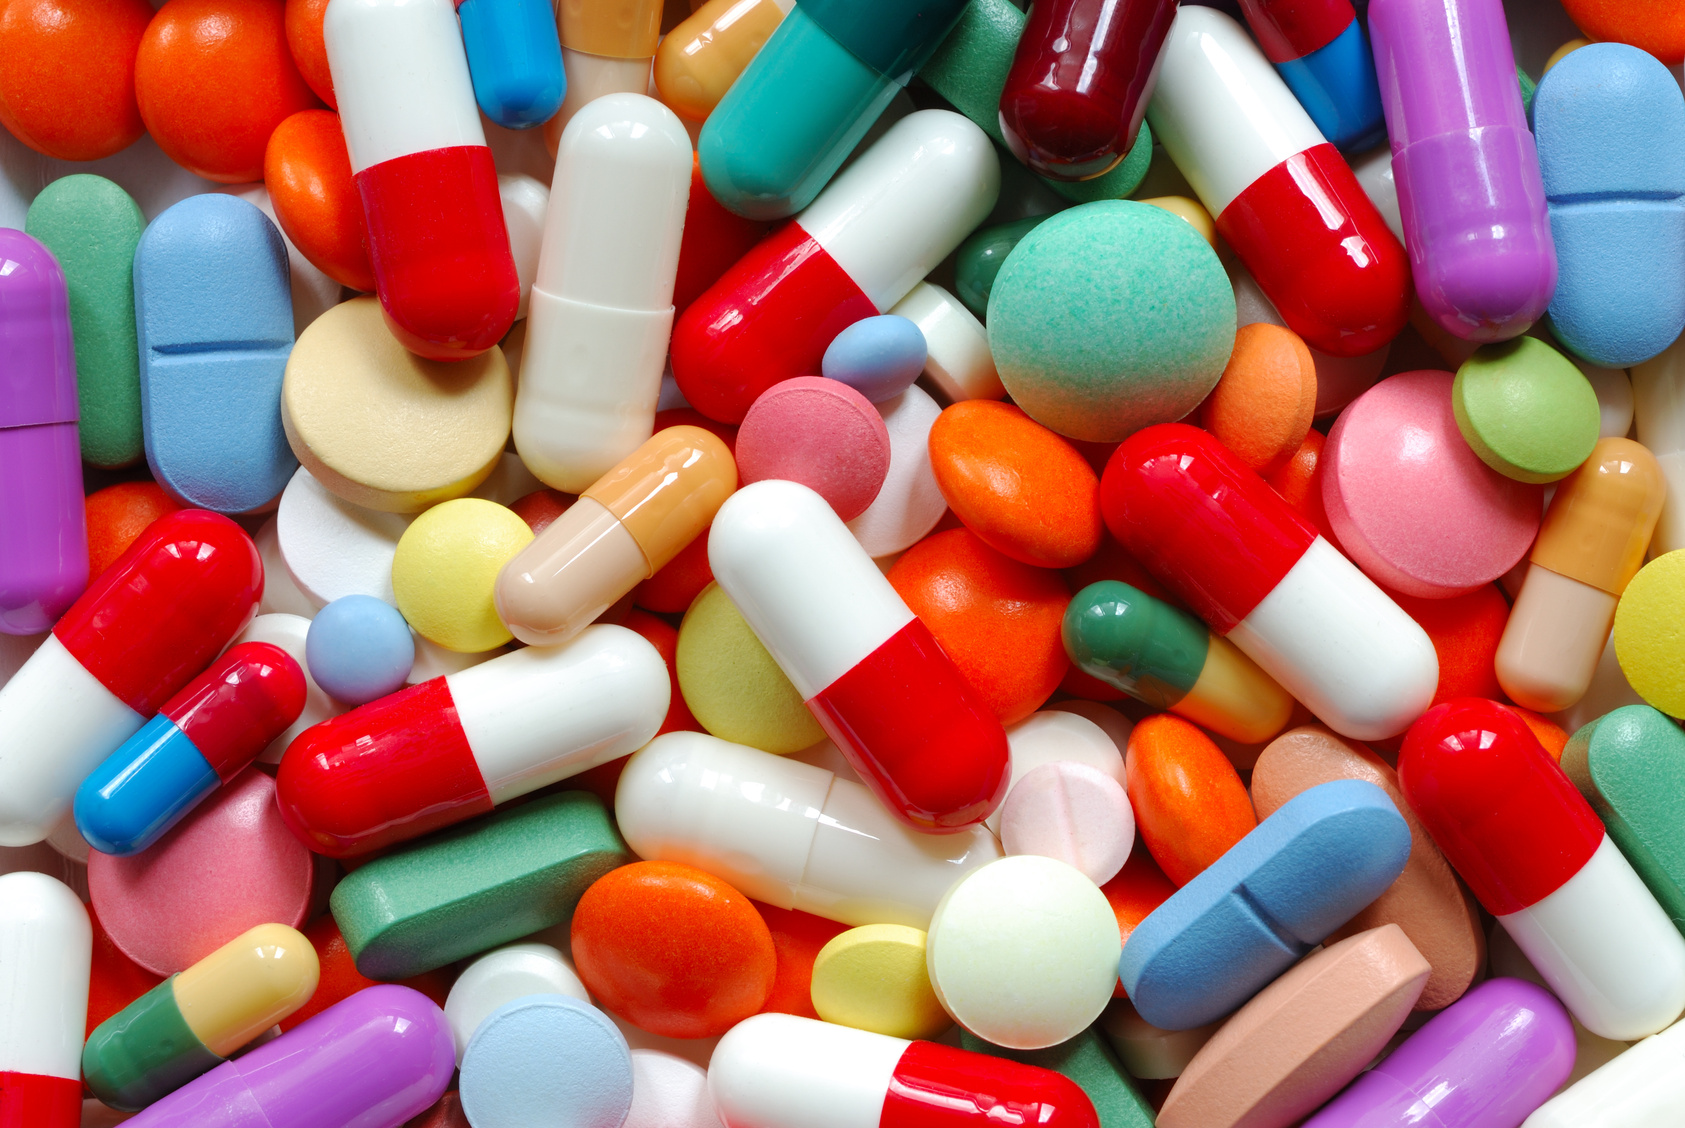 Our supply of effective antibiotics is rapidly dwindling